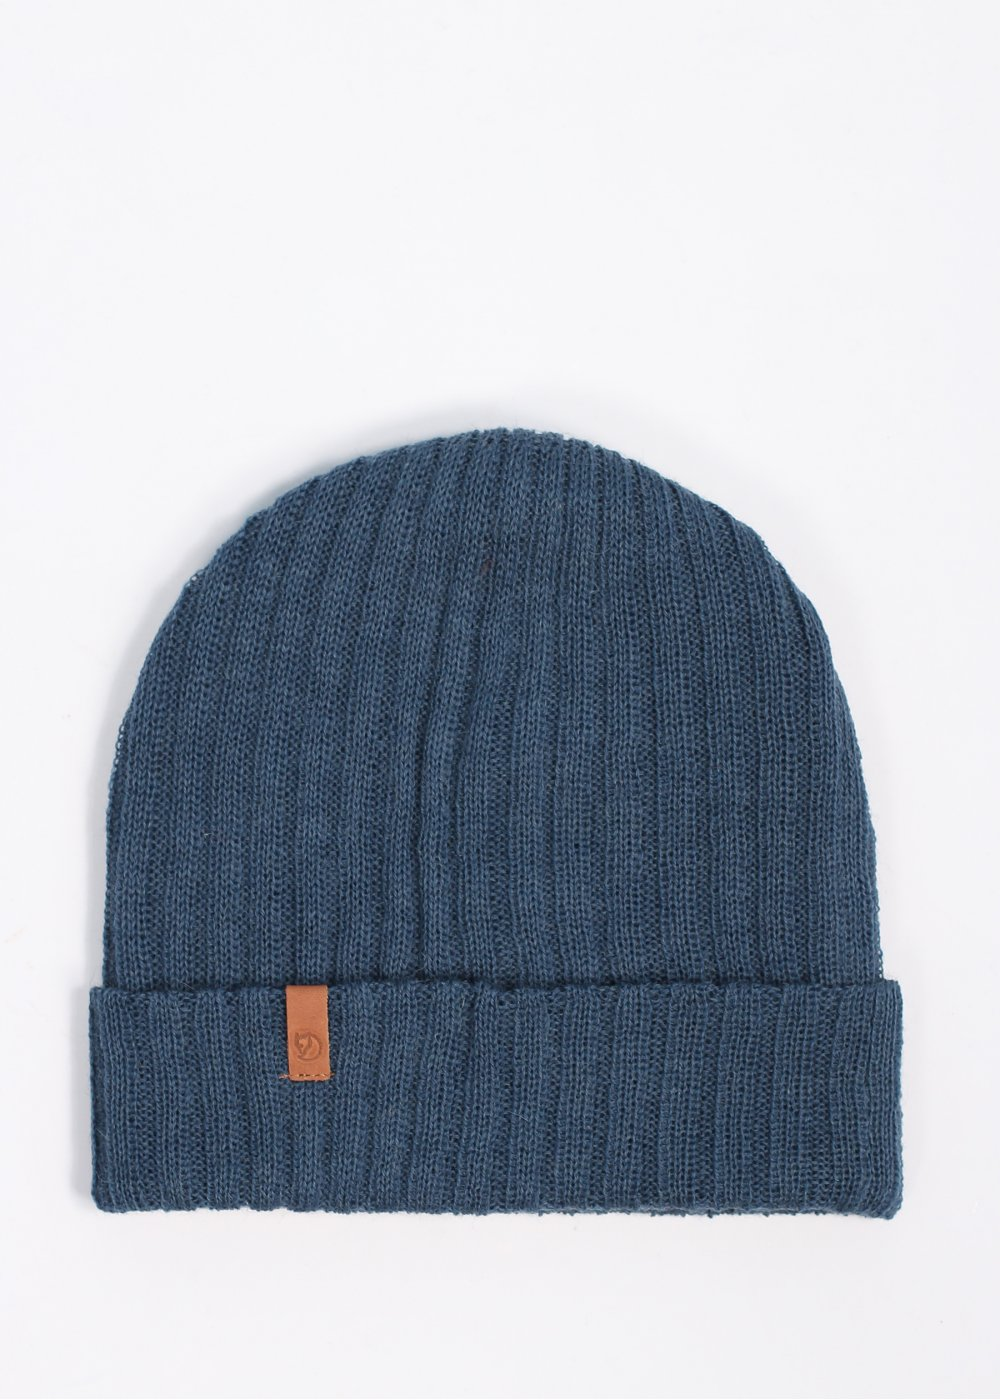 99f73c4f94880 Fjallraven Byron Thin Beanie Hat - Uncle Blue